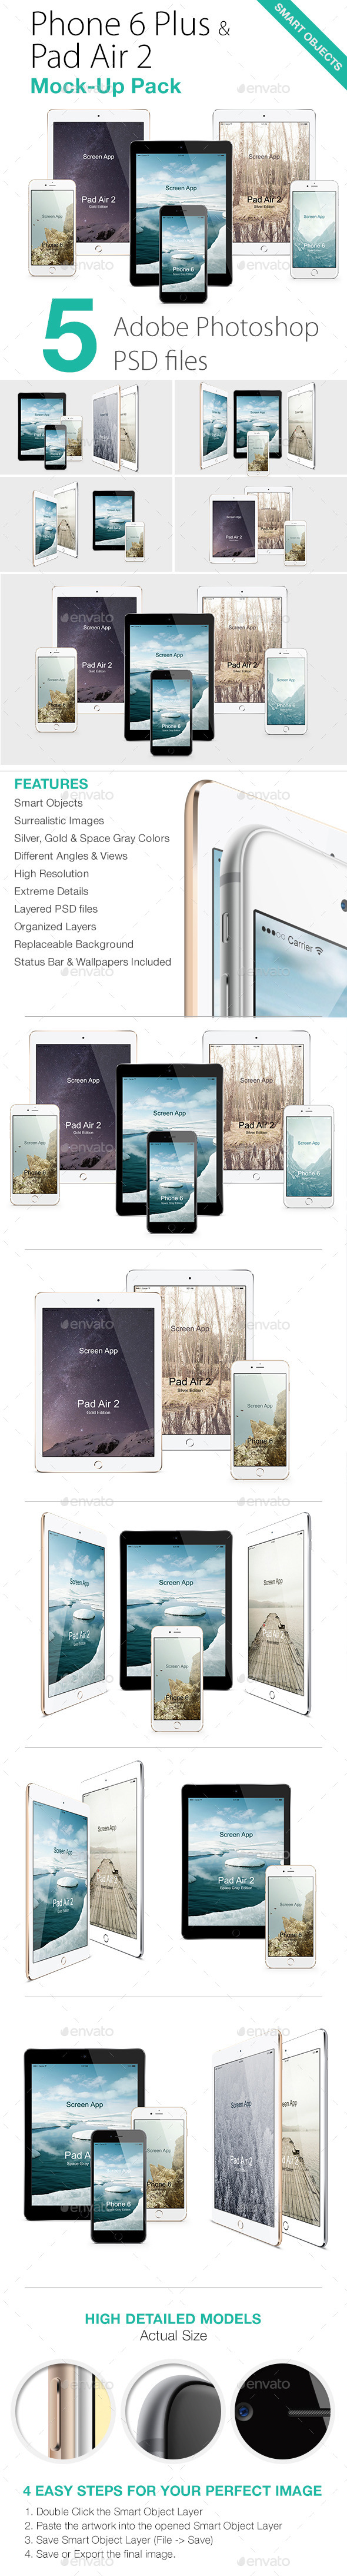 iPhone 6 & iPad Air 2 Mock-Ups Pack - Product Mock-Ups Graphics